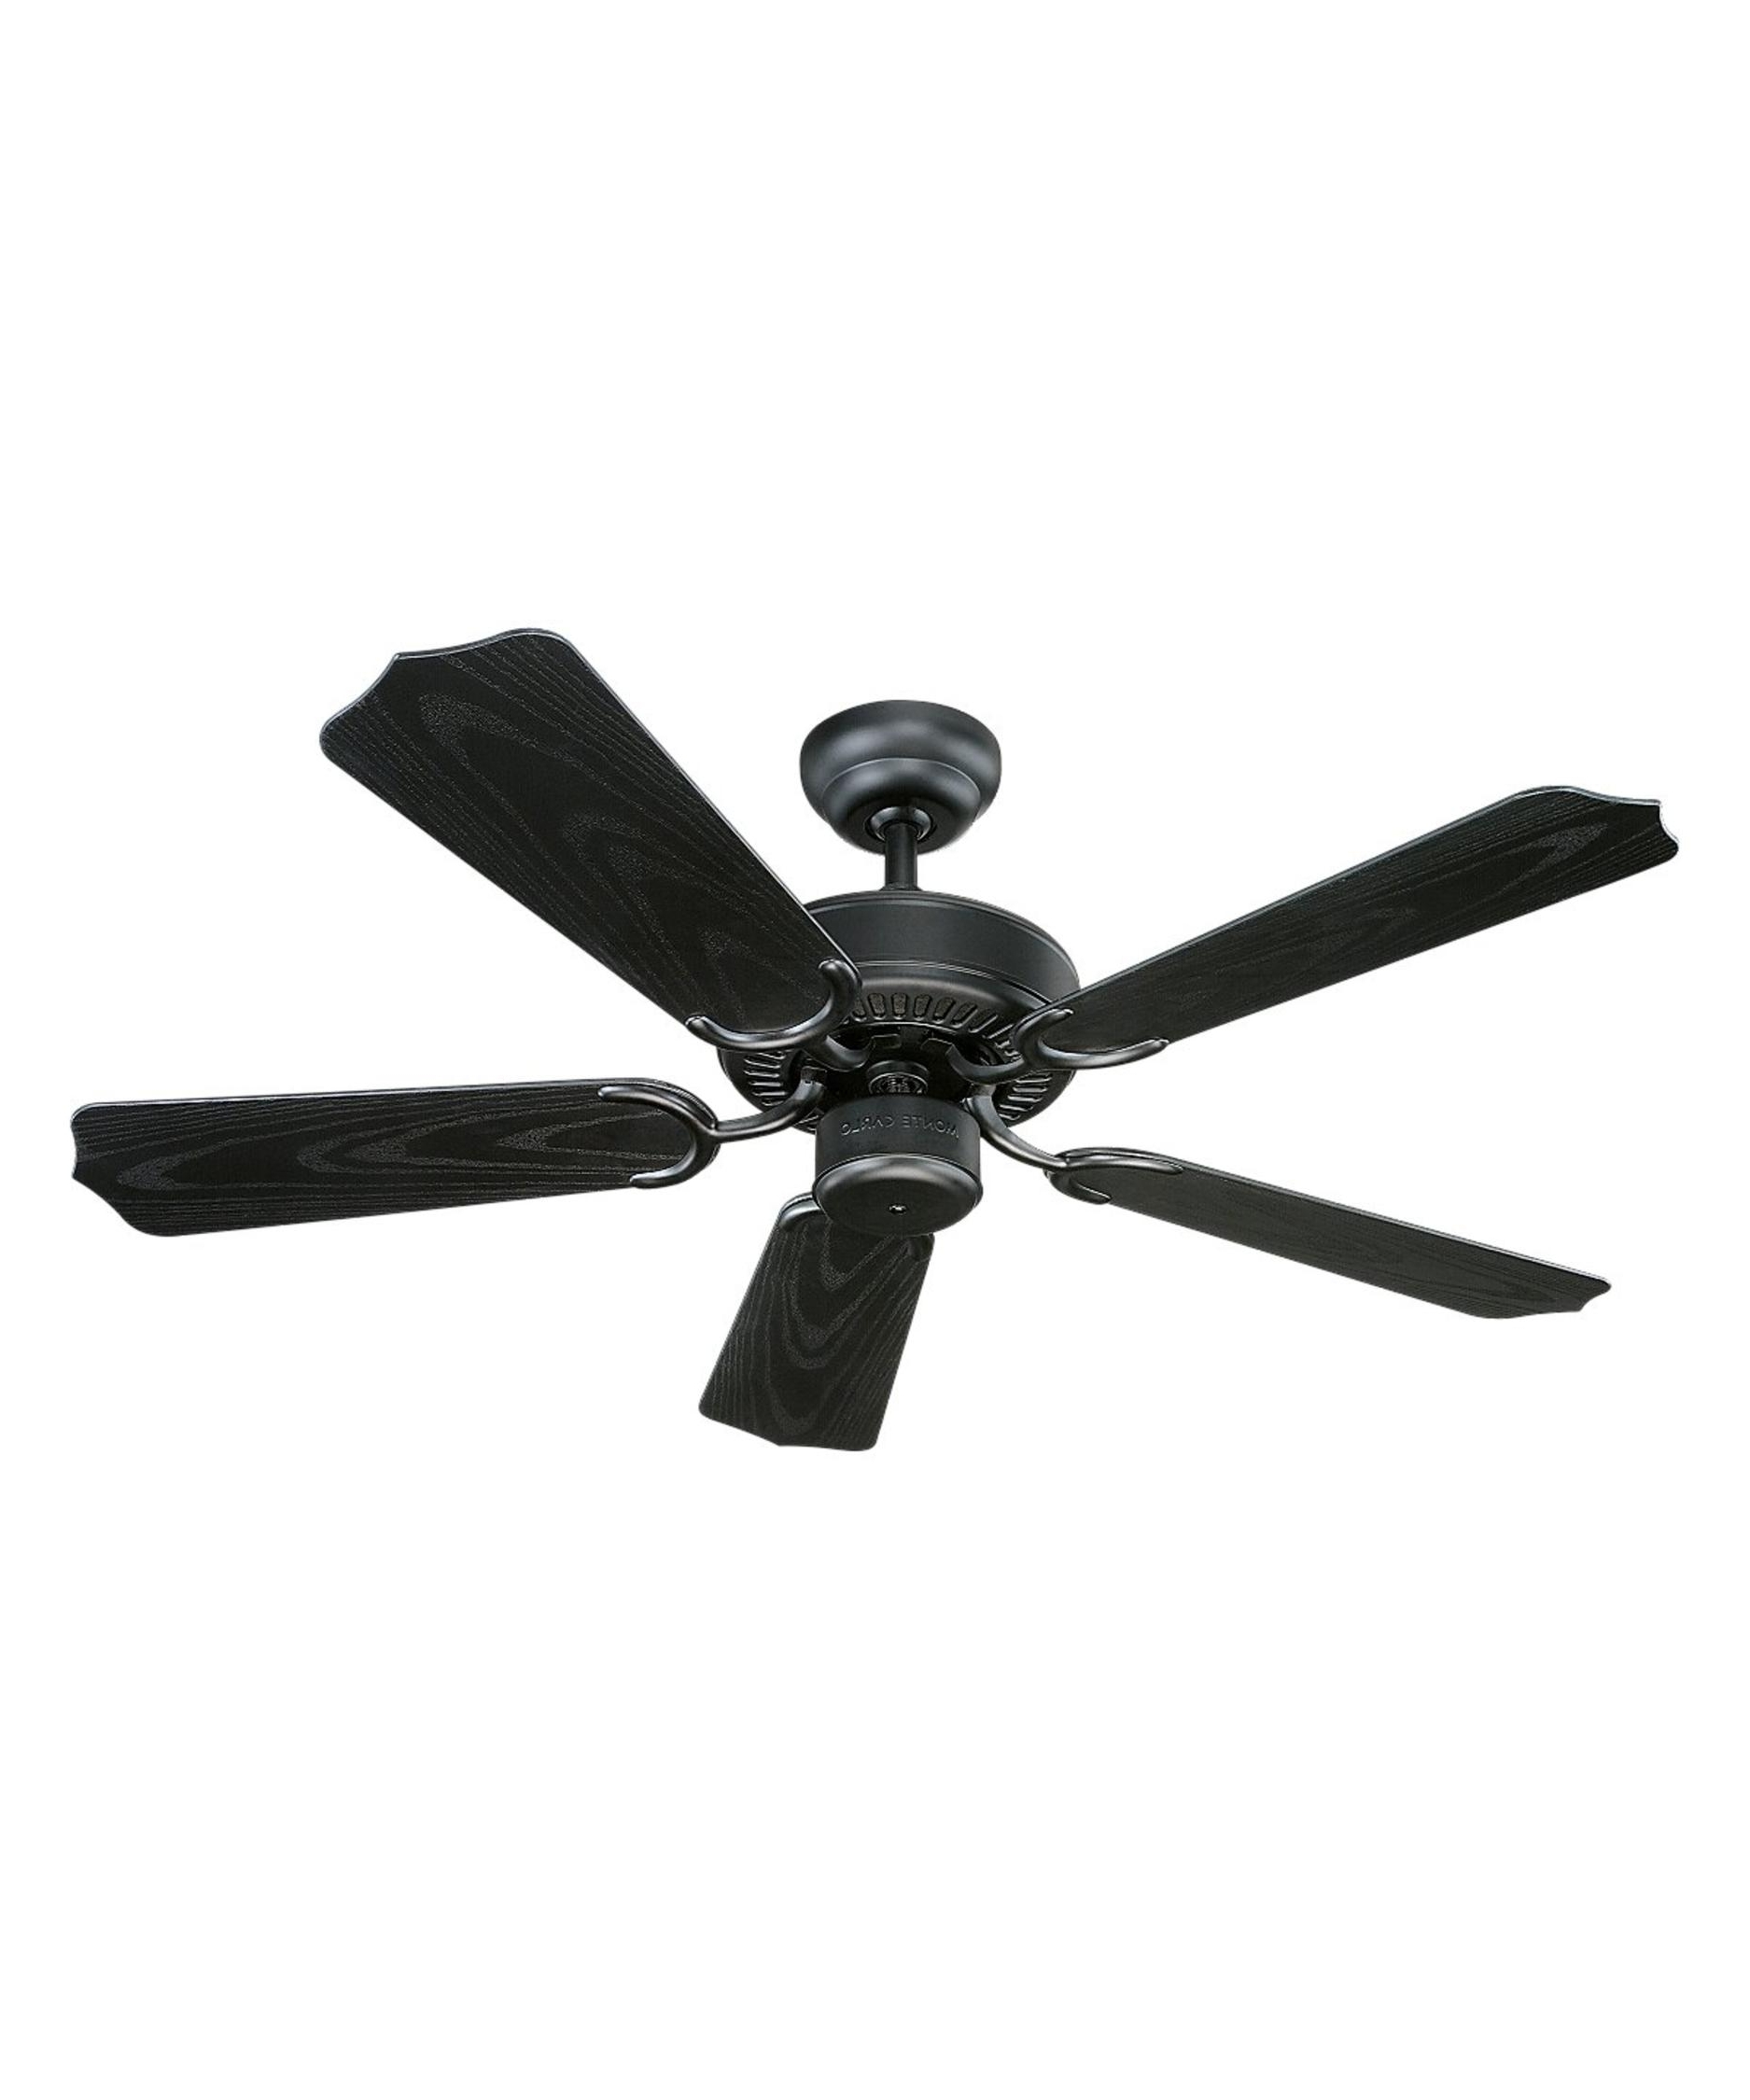 Fashionable 42 Inch Outdoor Ceiling Fans With Lights With Regard To Monte Carlo 5Wf42 Weatherford Ii 42 Inch 5 Blade Ceiling Fan (View 10 of 20)